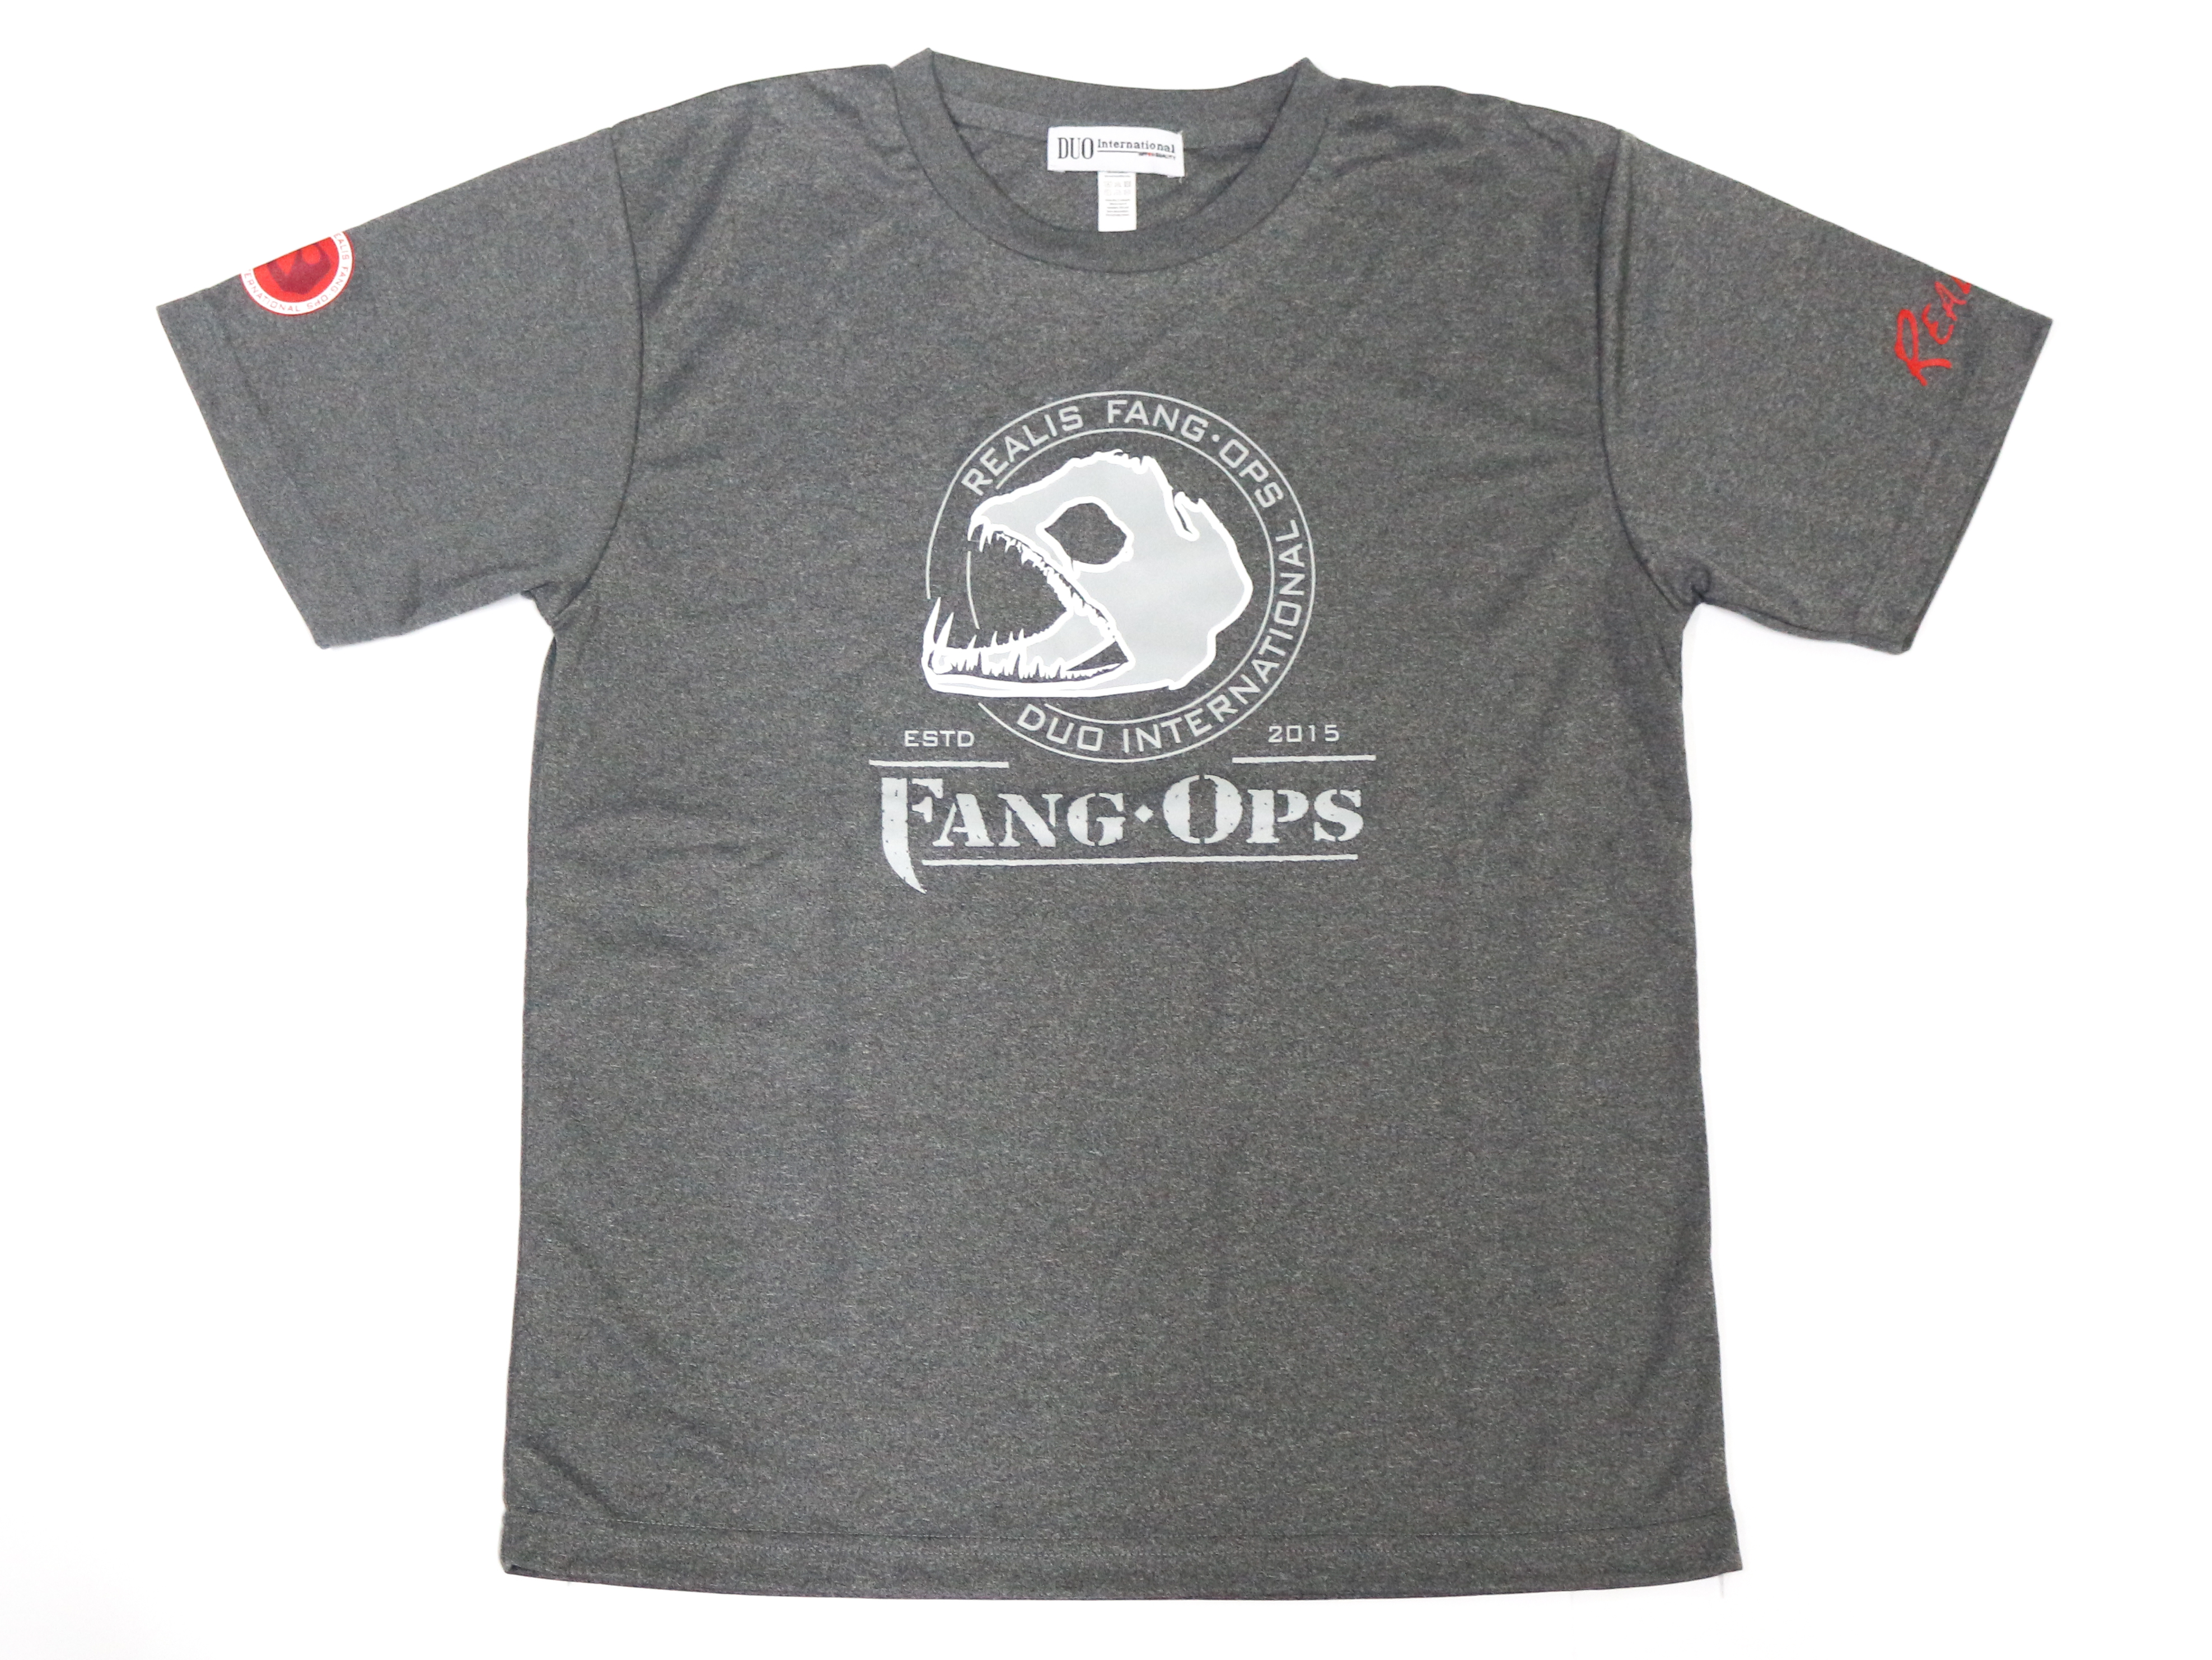 Duo T-Shirt Fang Ops Dry Fit Short Sleeve Size XL Urban Grey (0031)